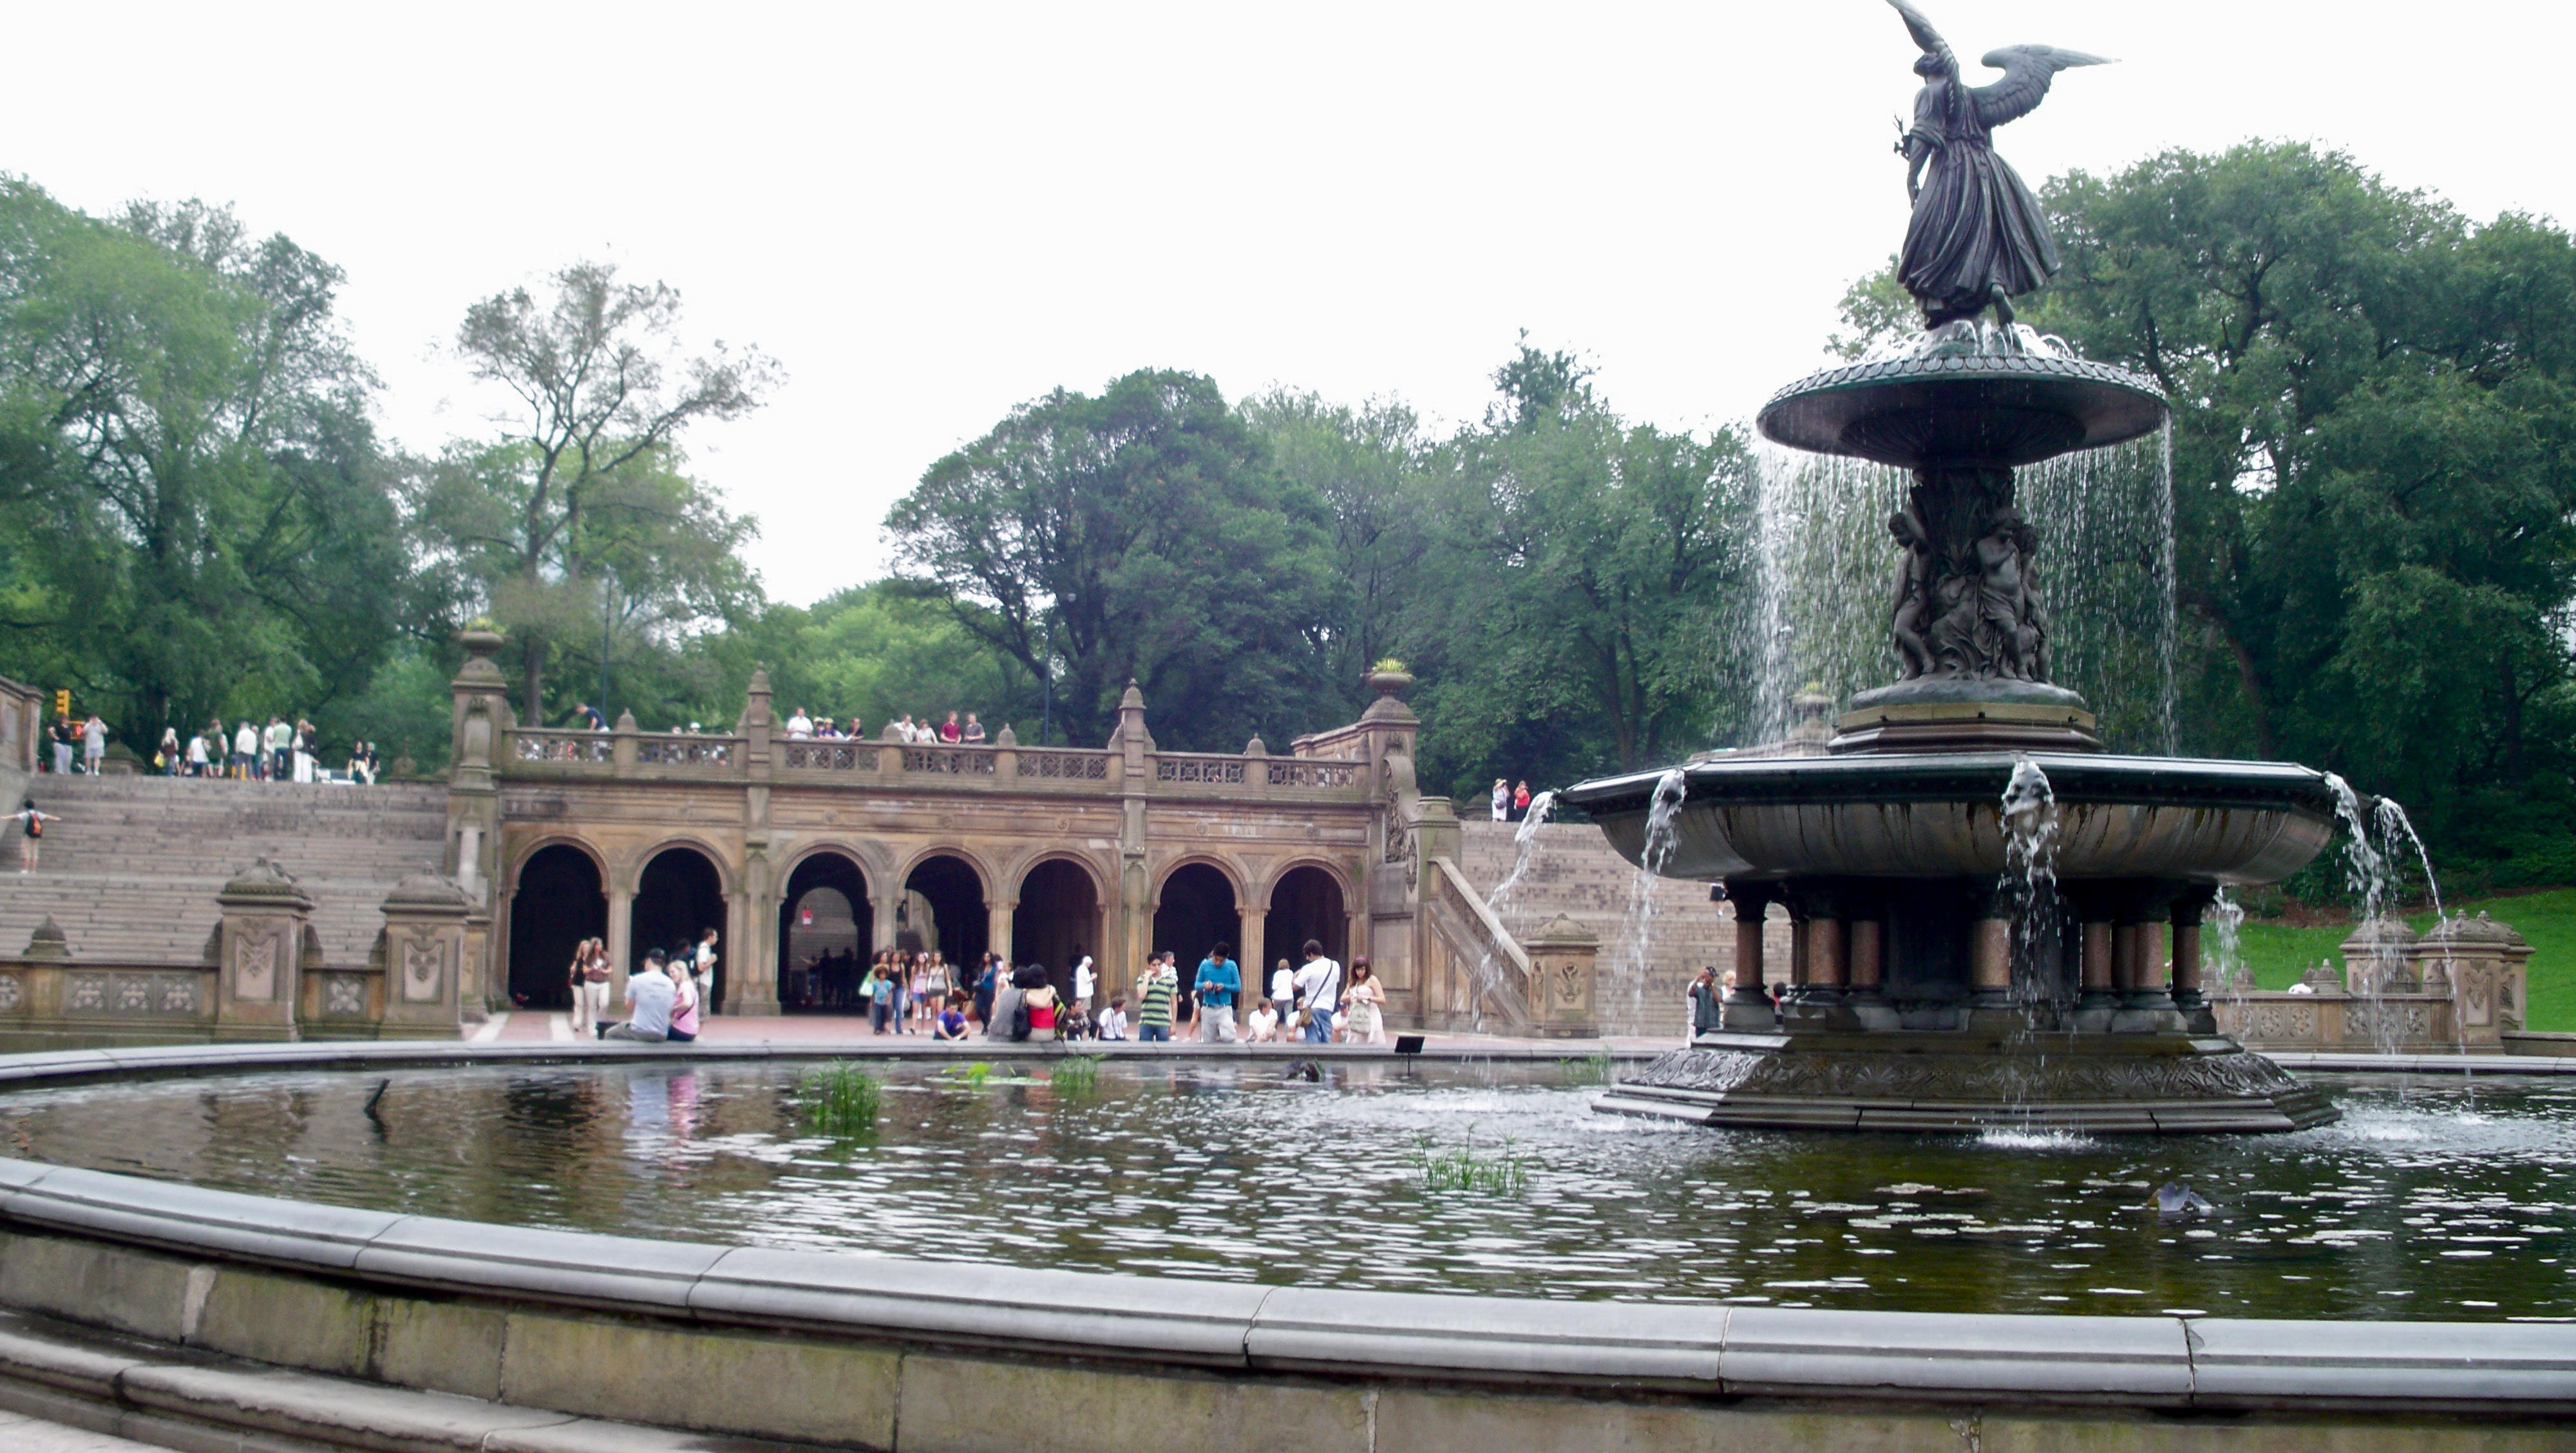 About bethesda terrace for On the terrace